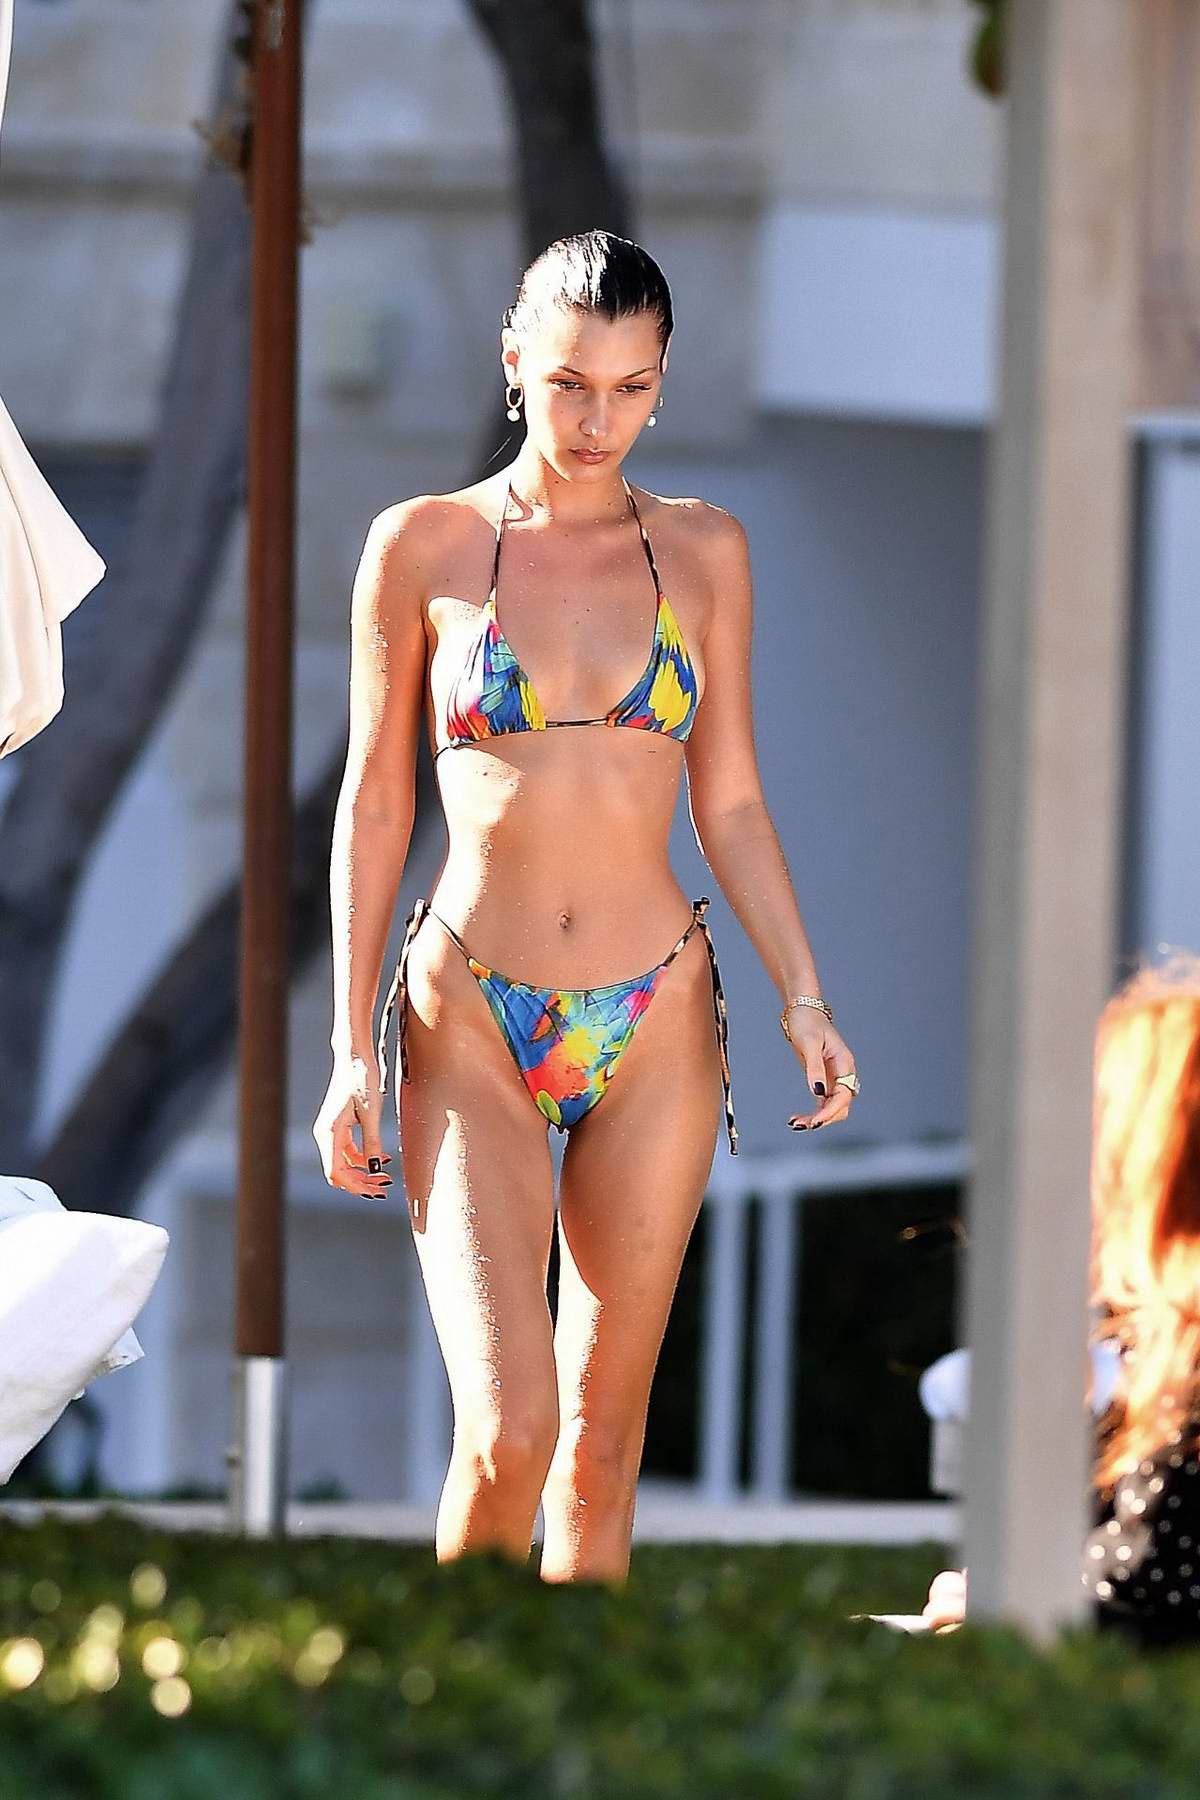 Bella Hadid stuns in a colorful bikini while relaxing by the pool in Miami Beach, Florida